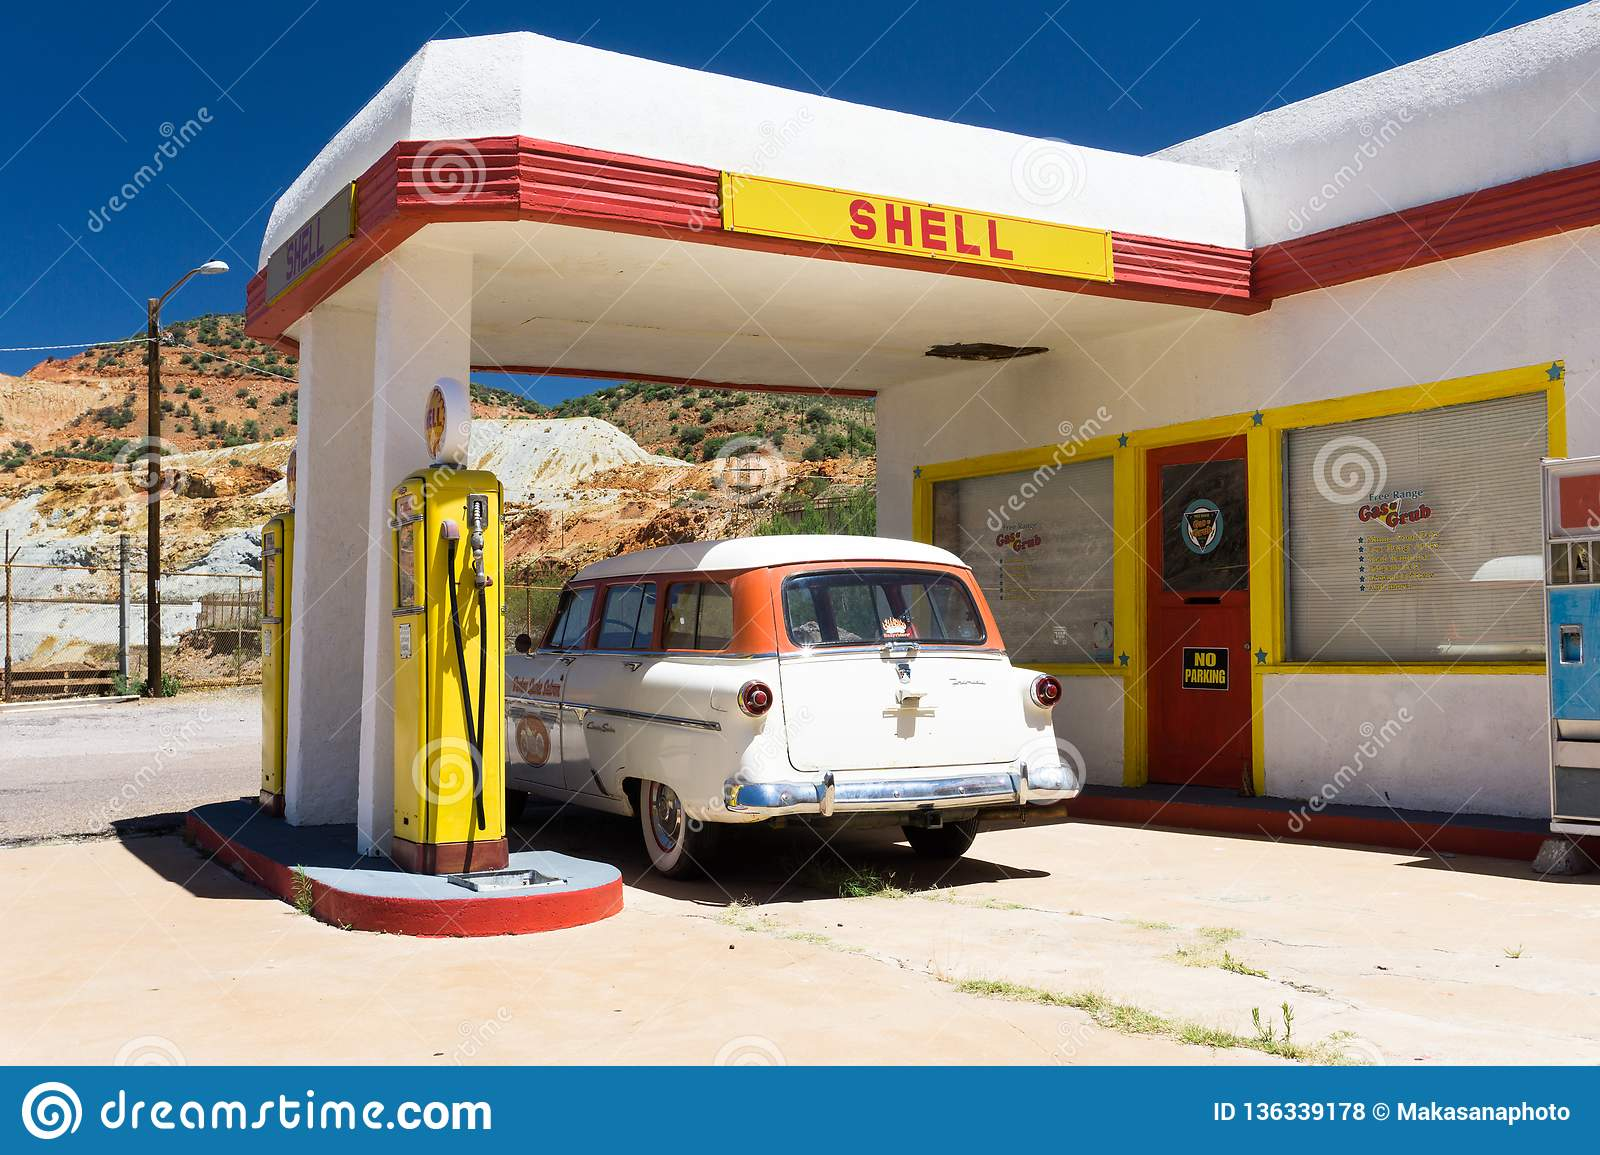 Lowell Az Usa July 12 2016 Old Fuel Pump And Classic Car At An Abandoned Ghost Town Gas Station Editorial Stock Photo Image Of Fuel Lowell 136339178